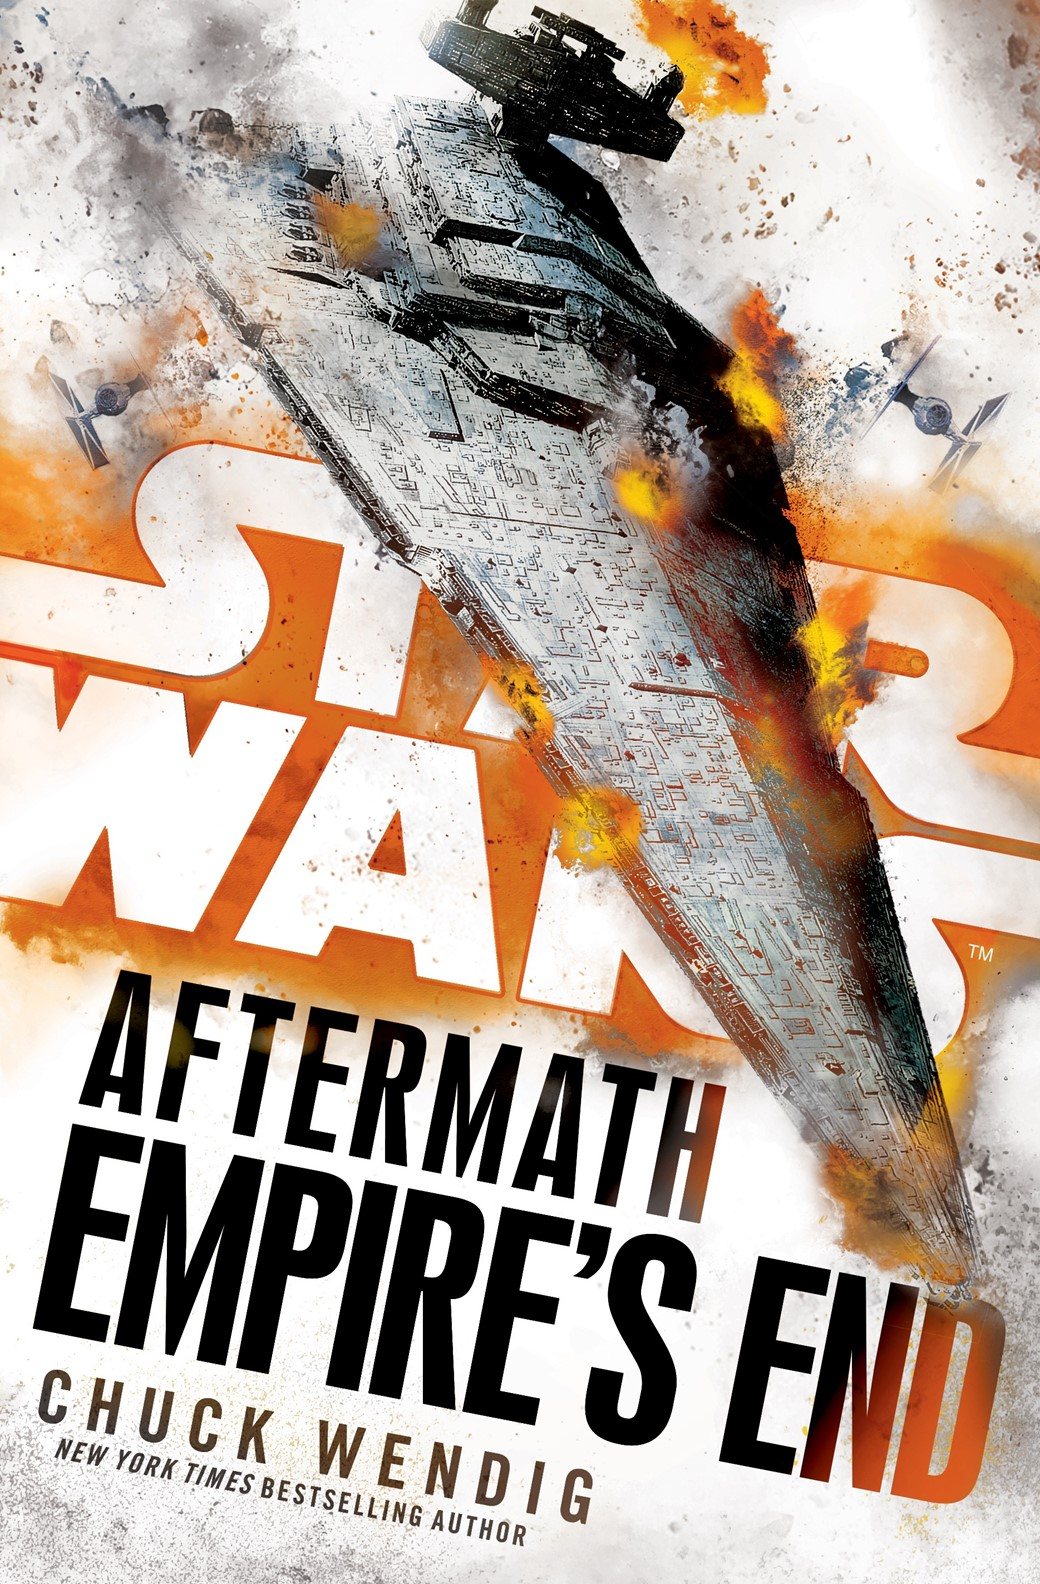 Star Wars Empire's End